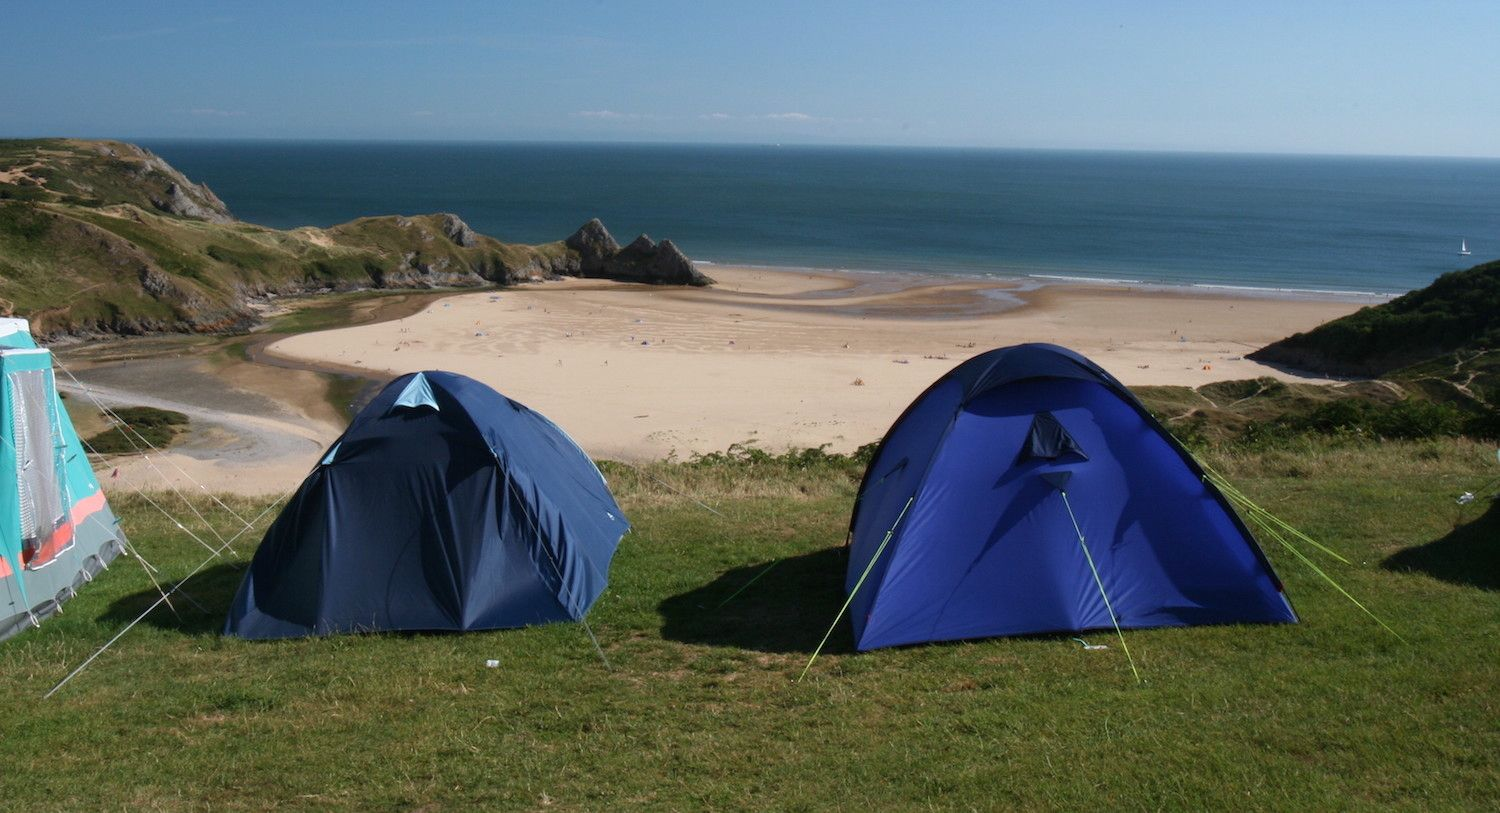 Best Seaside C&sites & Cool Camping: Campsites u0026 Glamping in the UK and Europe